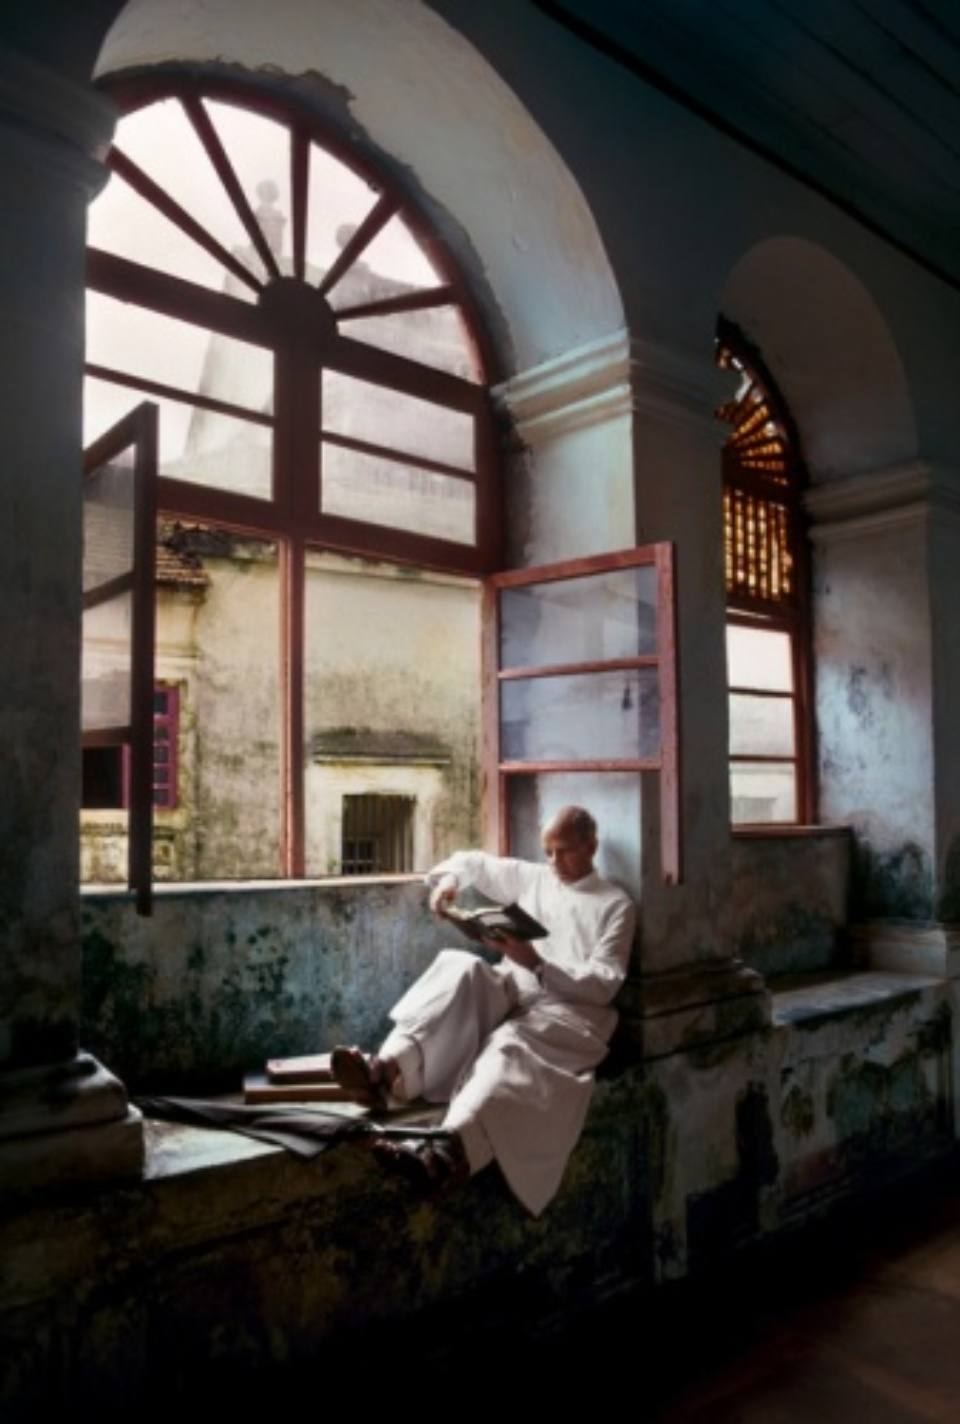 Steve McCurry: Man Reads by Window Goa, India, 1978